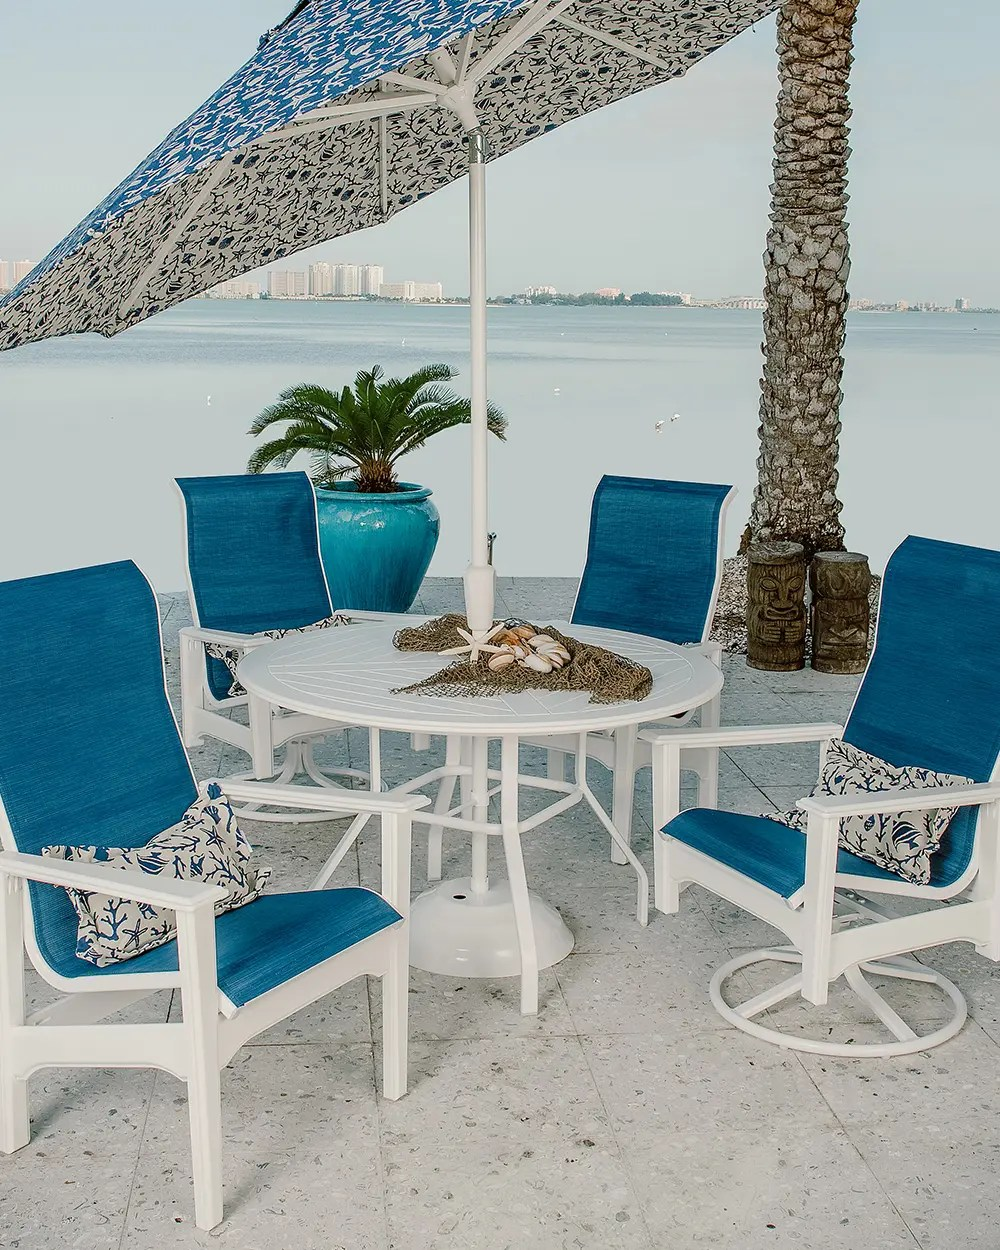 about windward design group hand crafted in america since 1991